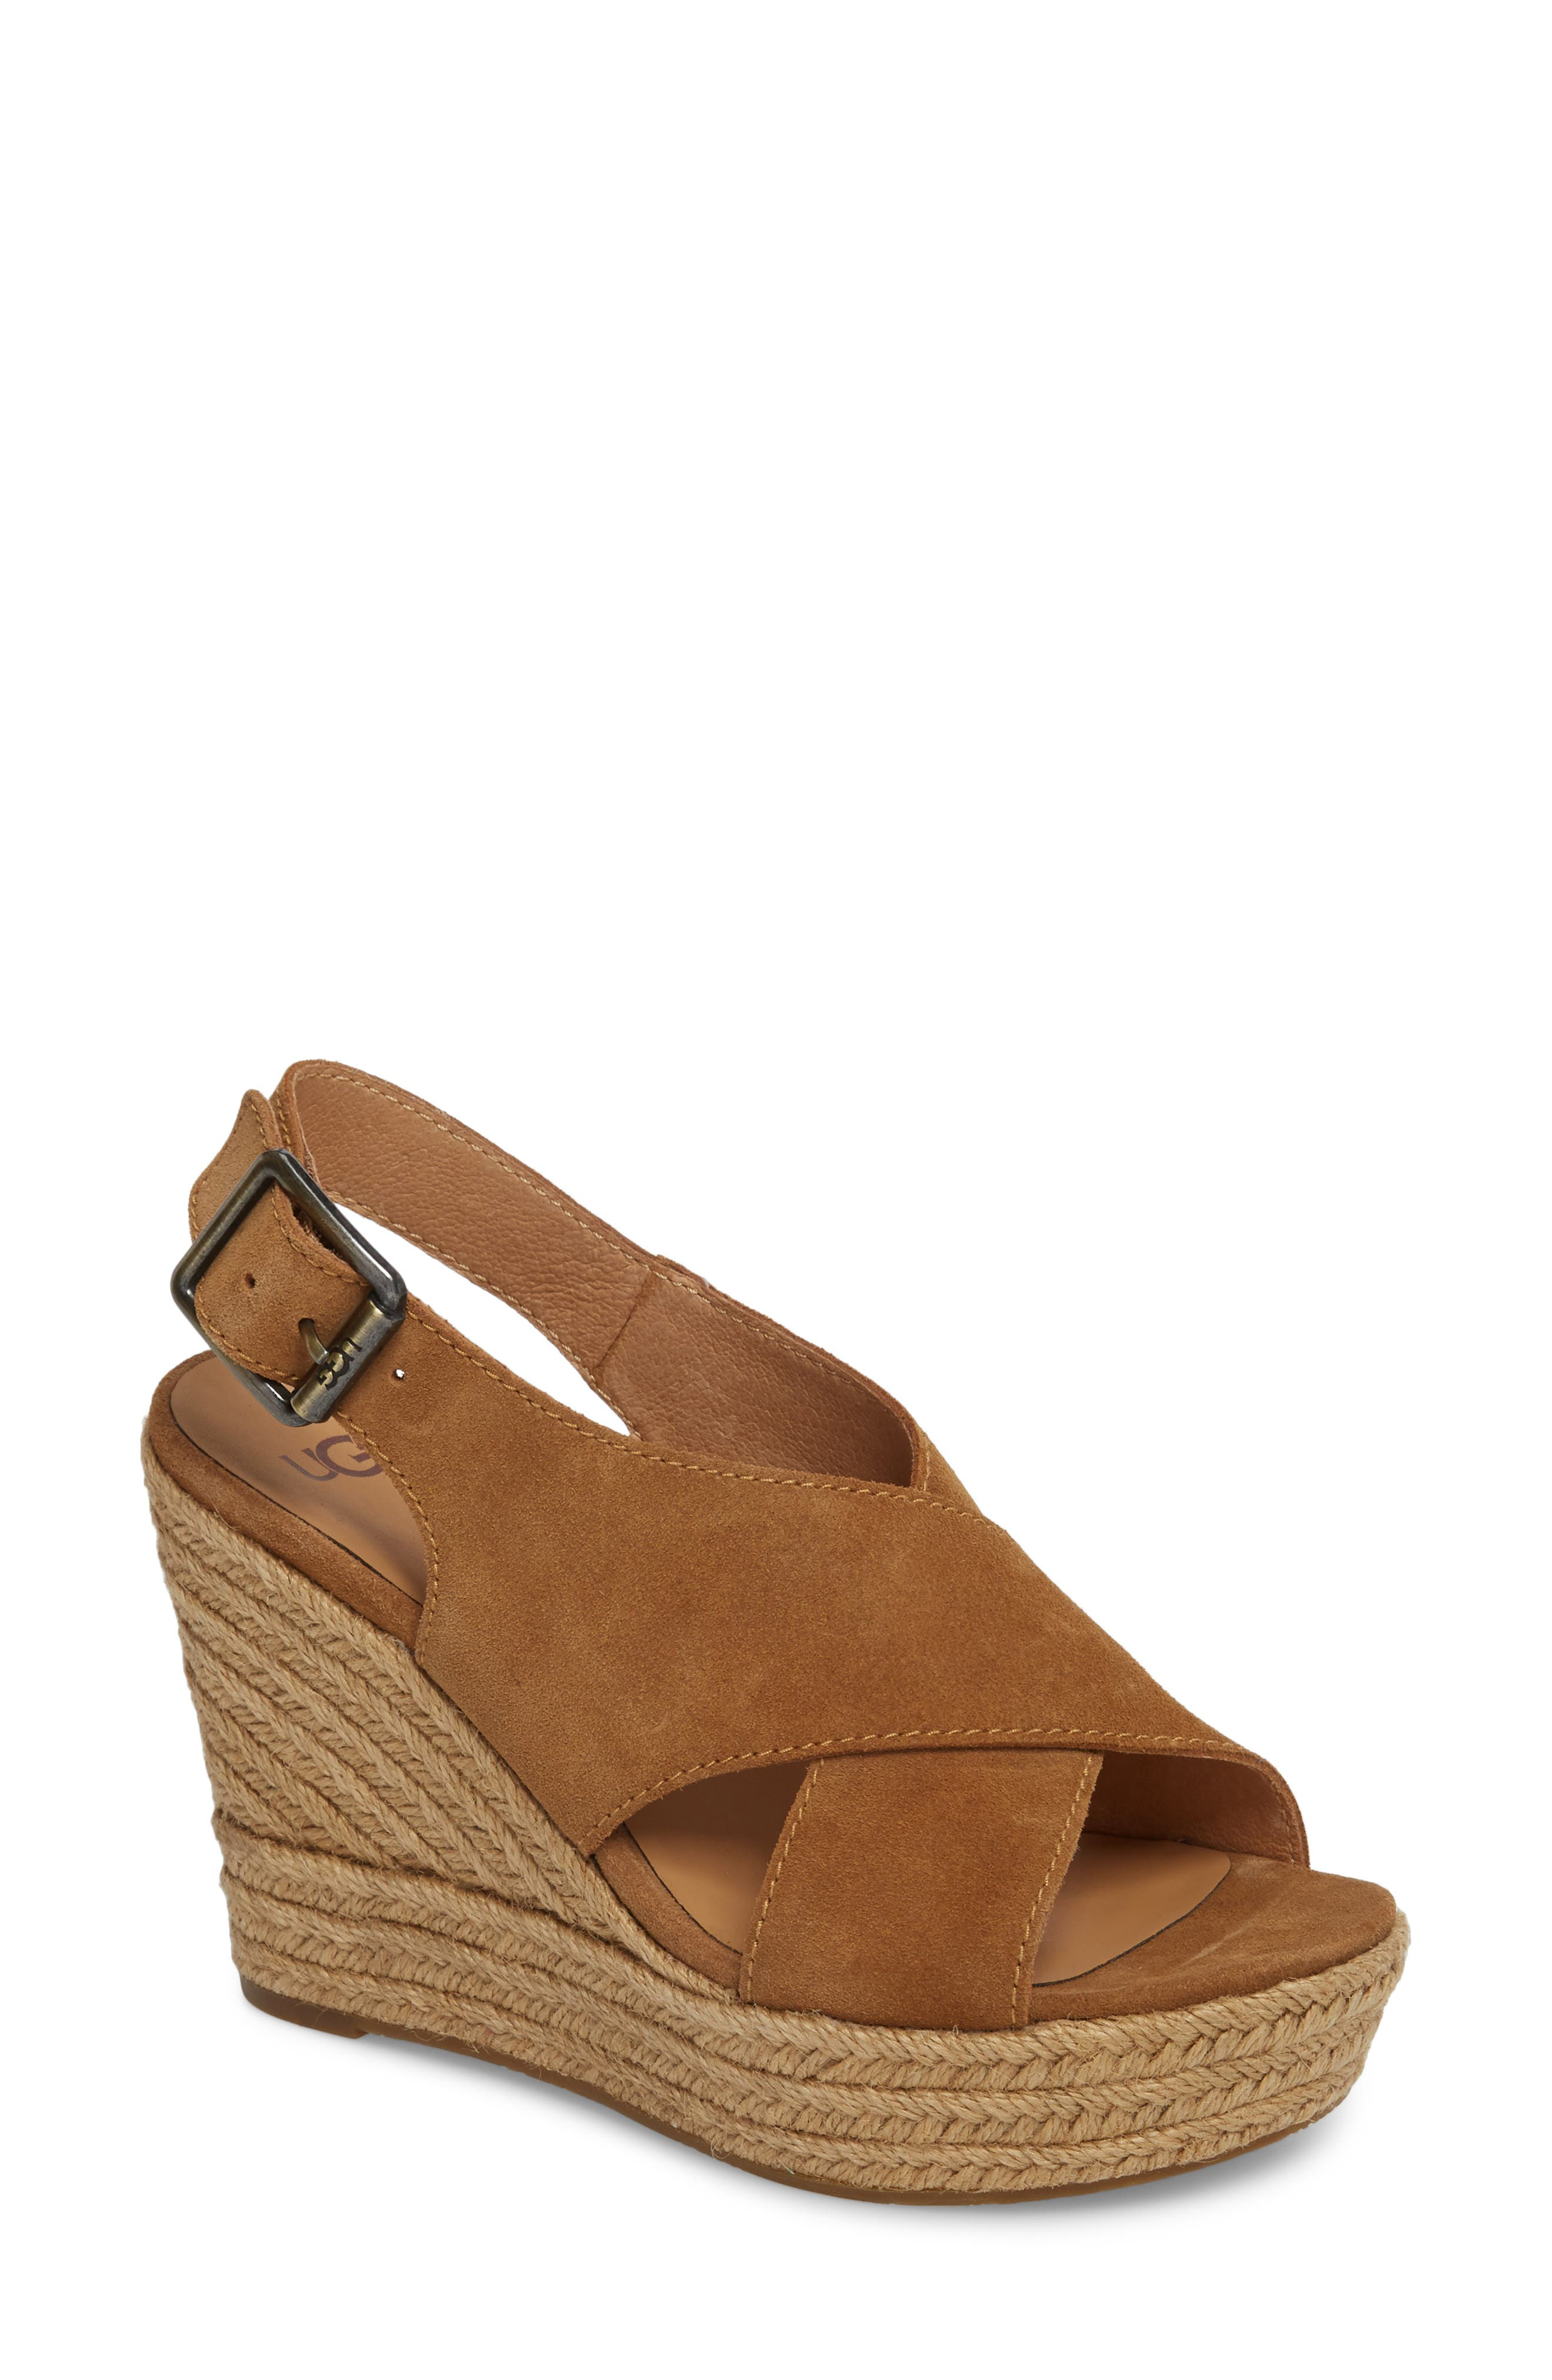 Harlow Platform Wedge Sandal,                         Main,                         color, Chestnut Suede